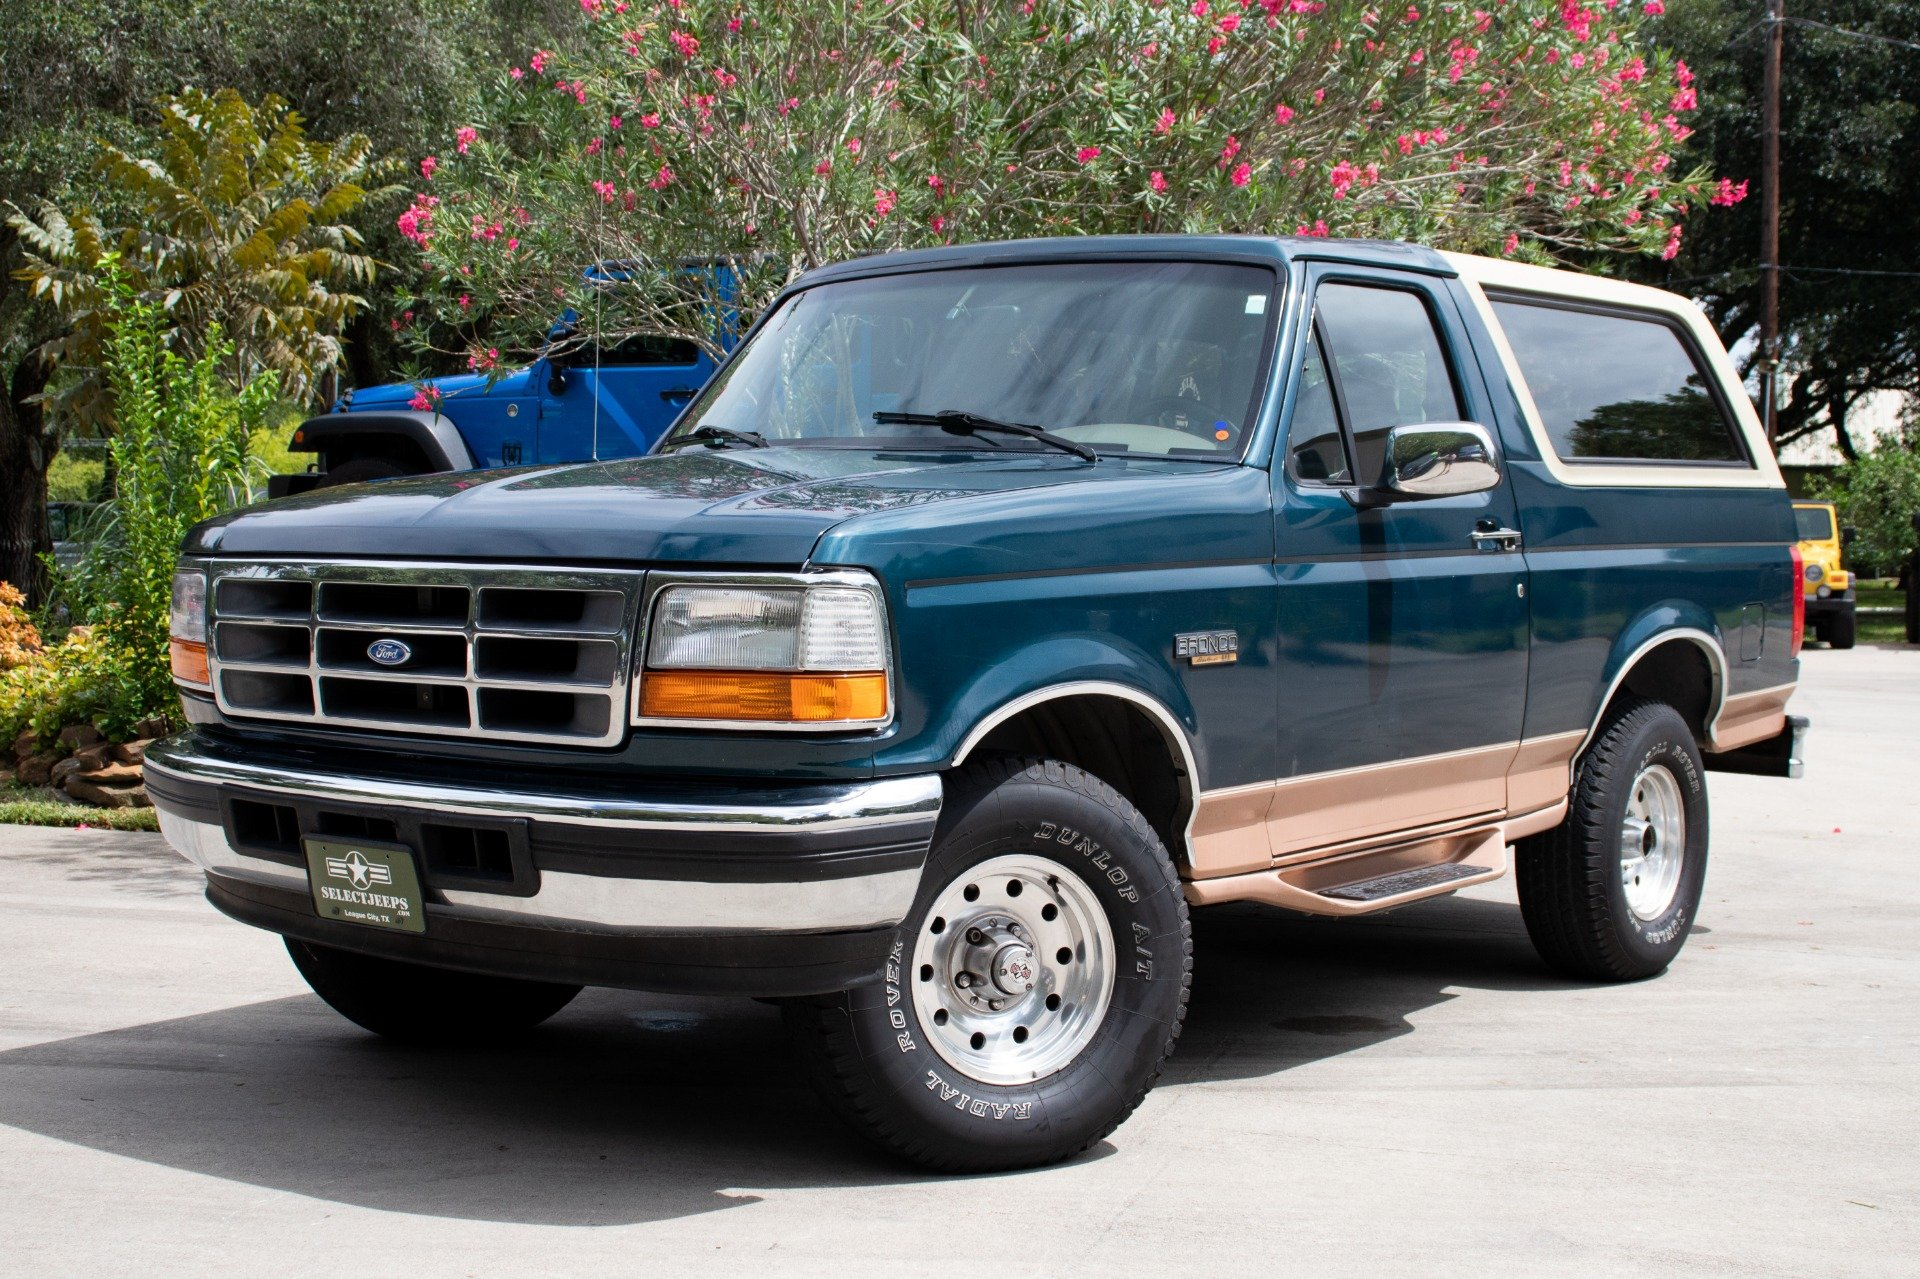 Used-1995-Ford-Bronco-Eddie-Bauer.jpg